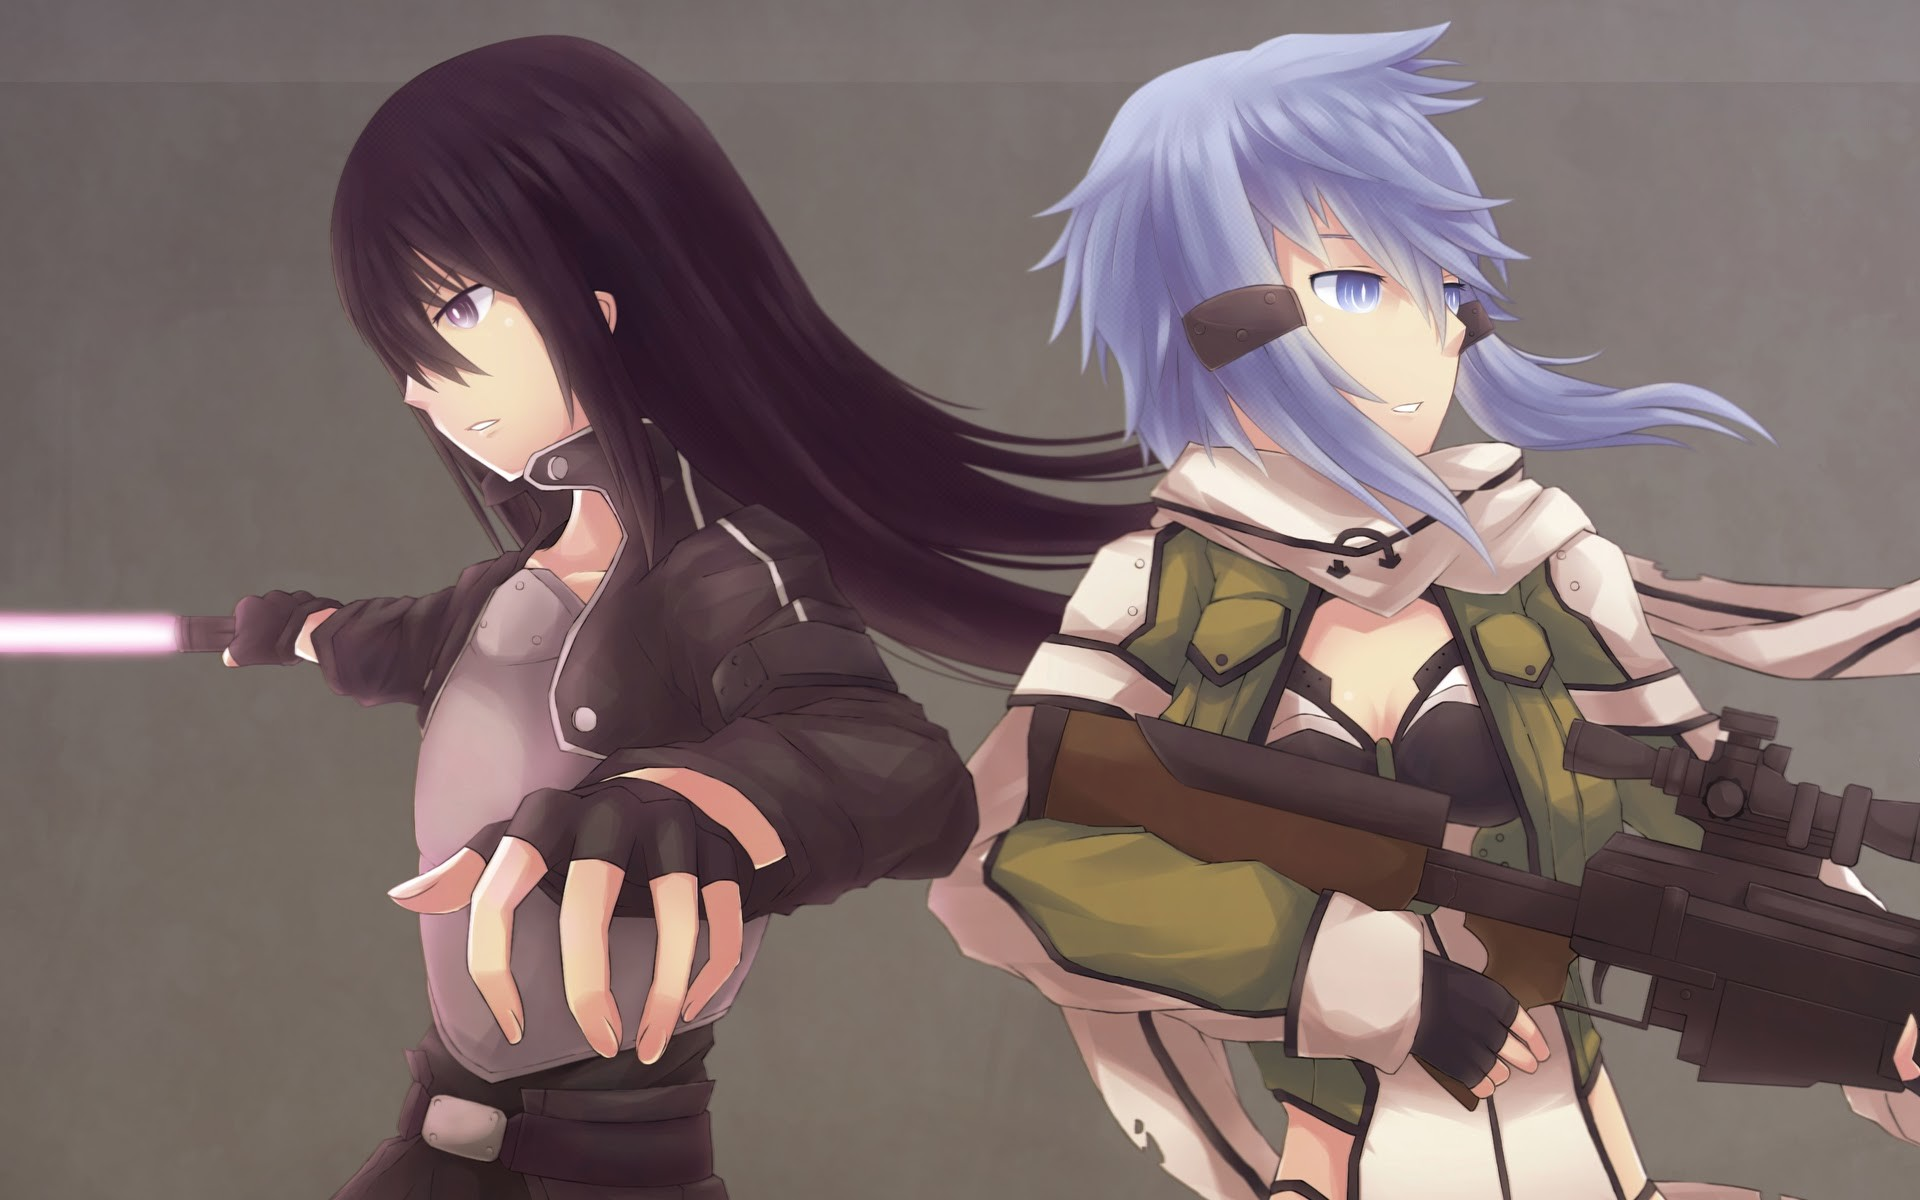 1920x1200 sinon kirito sword art online 2 gun gale online anime 2014 hd wallpaper